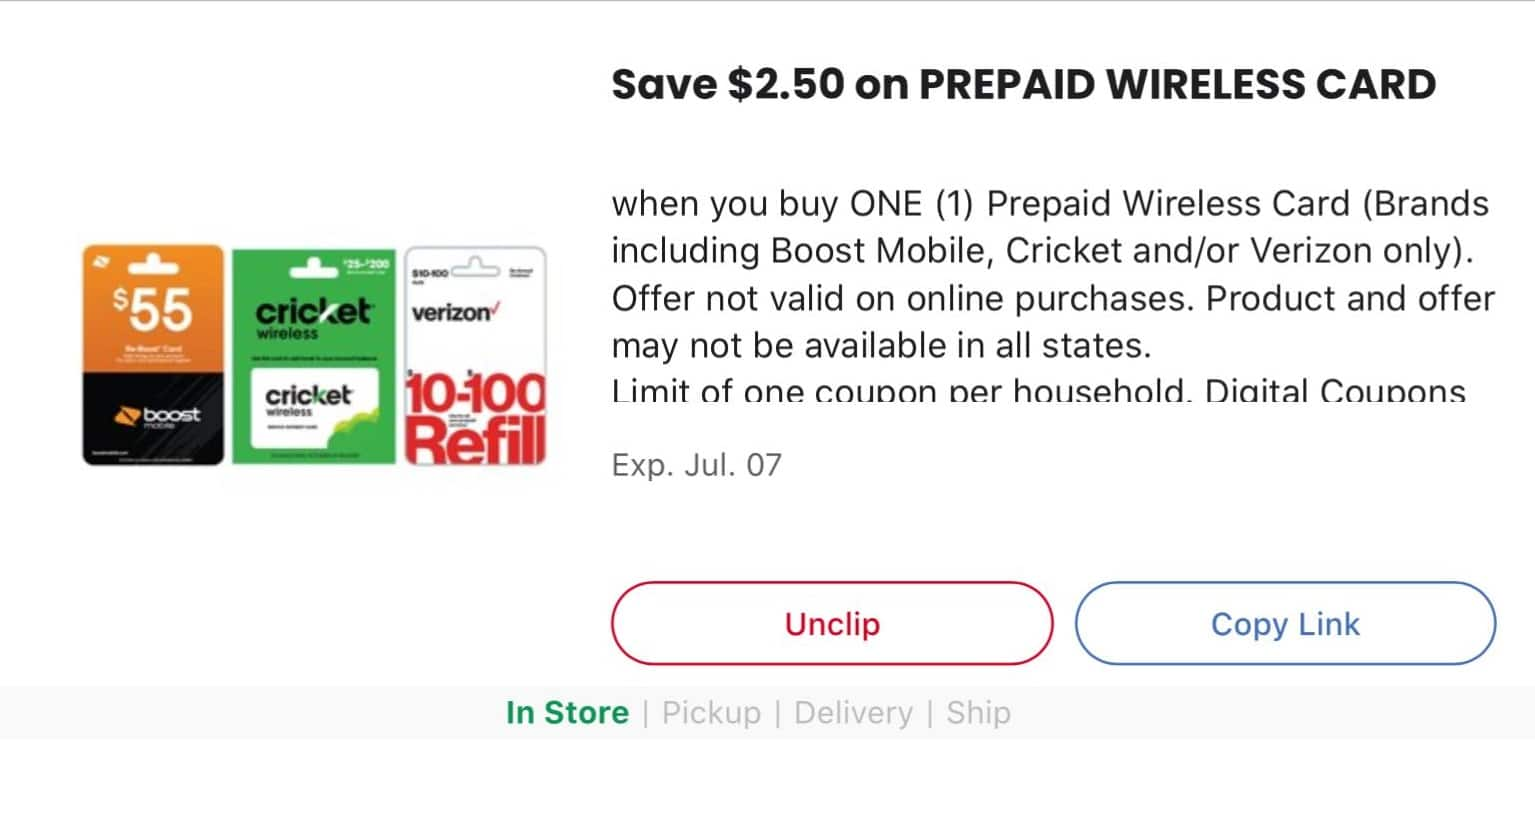 Boost Mobile, Cricket and/or Verizon Prepaid Wireless Card $2.50 off @ Kroger B&M